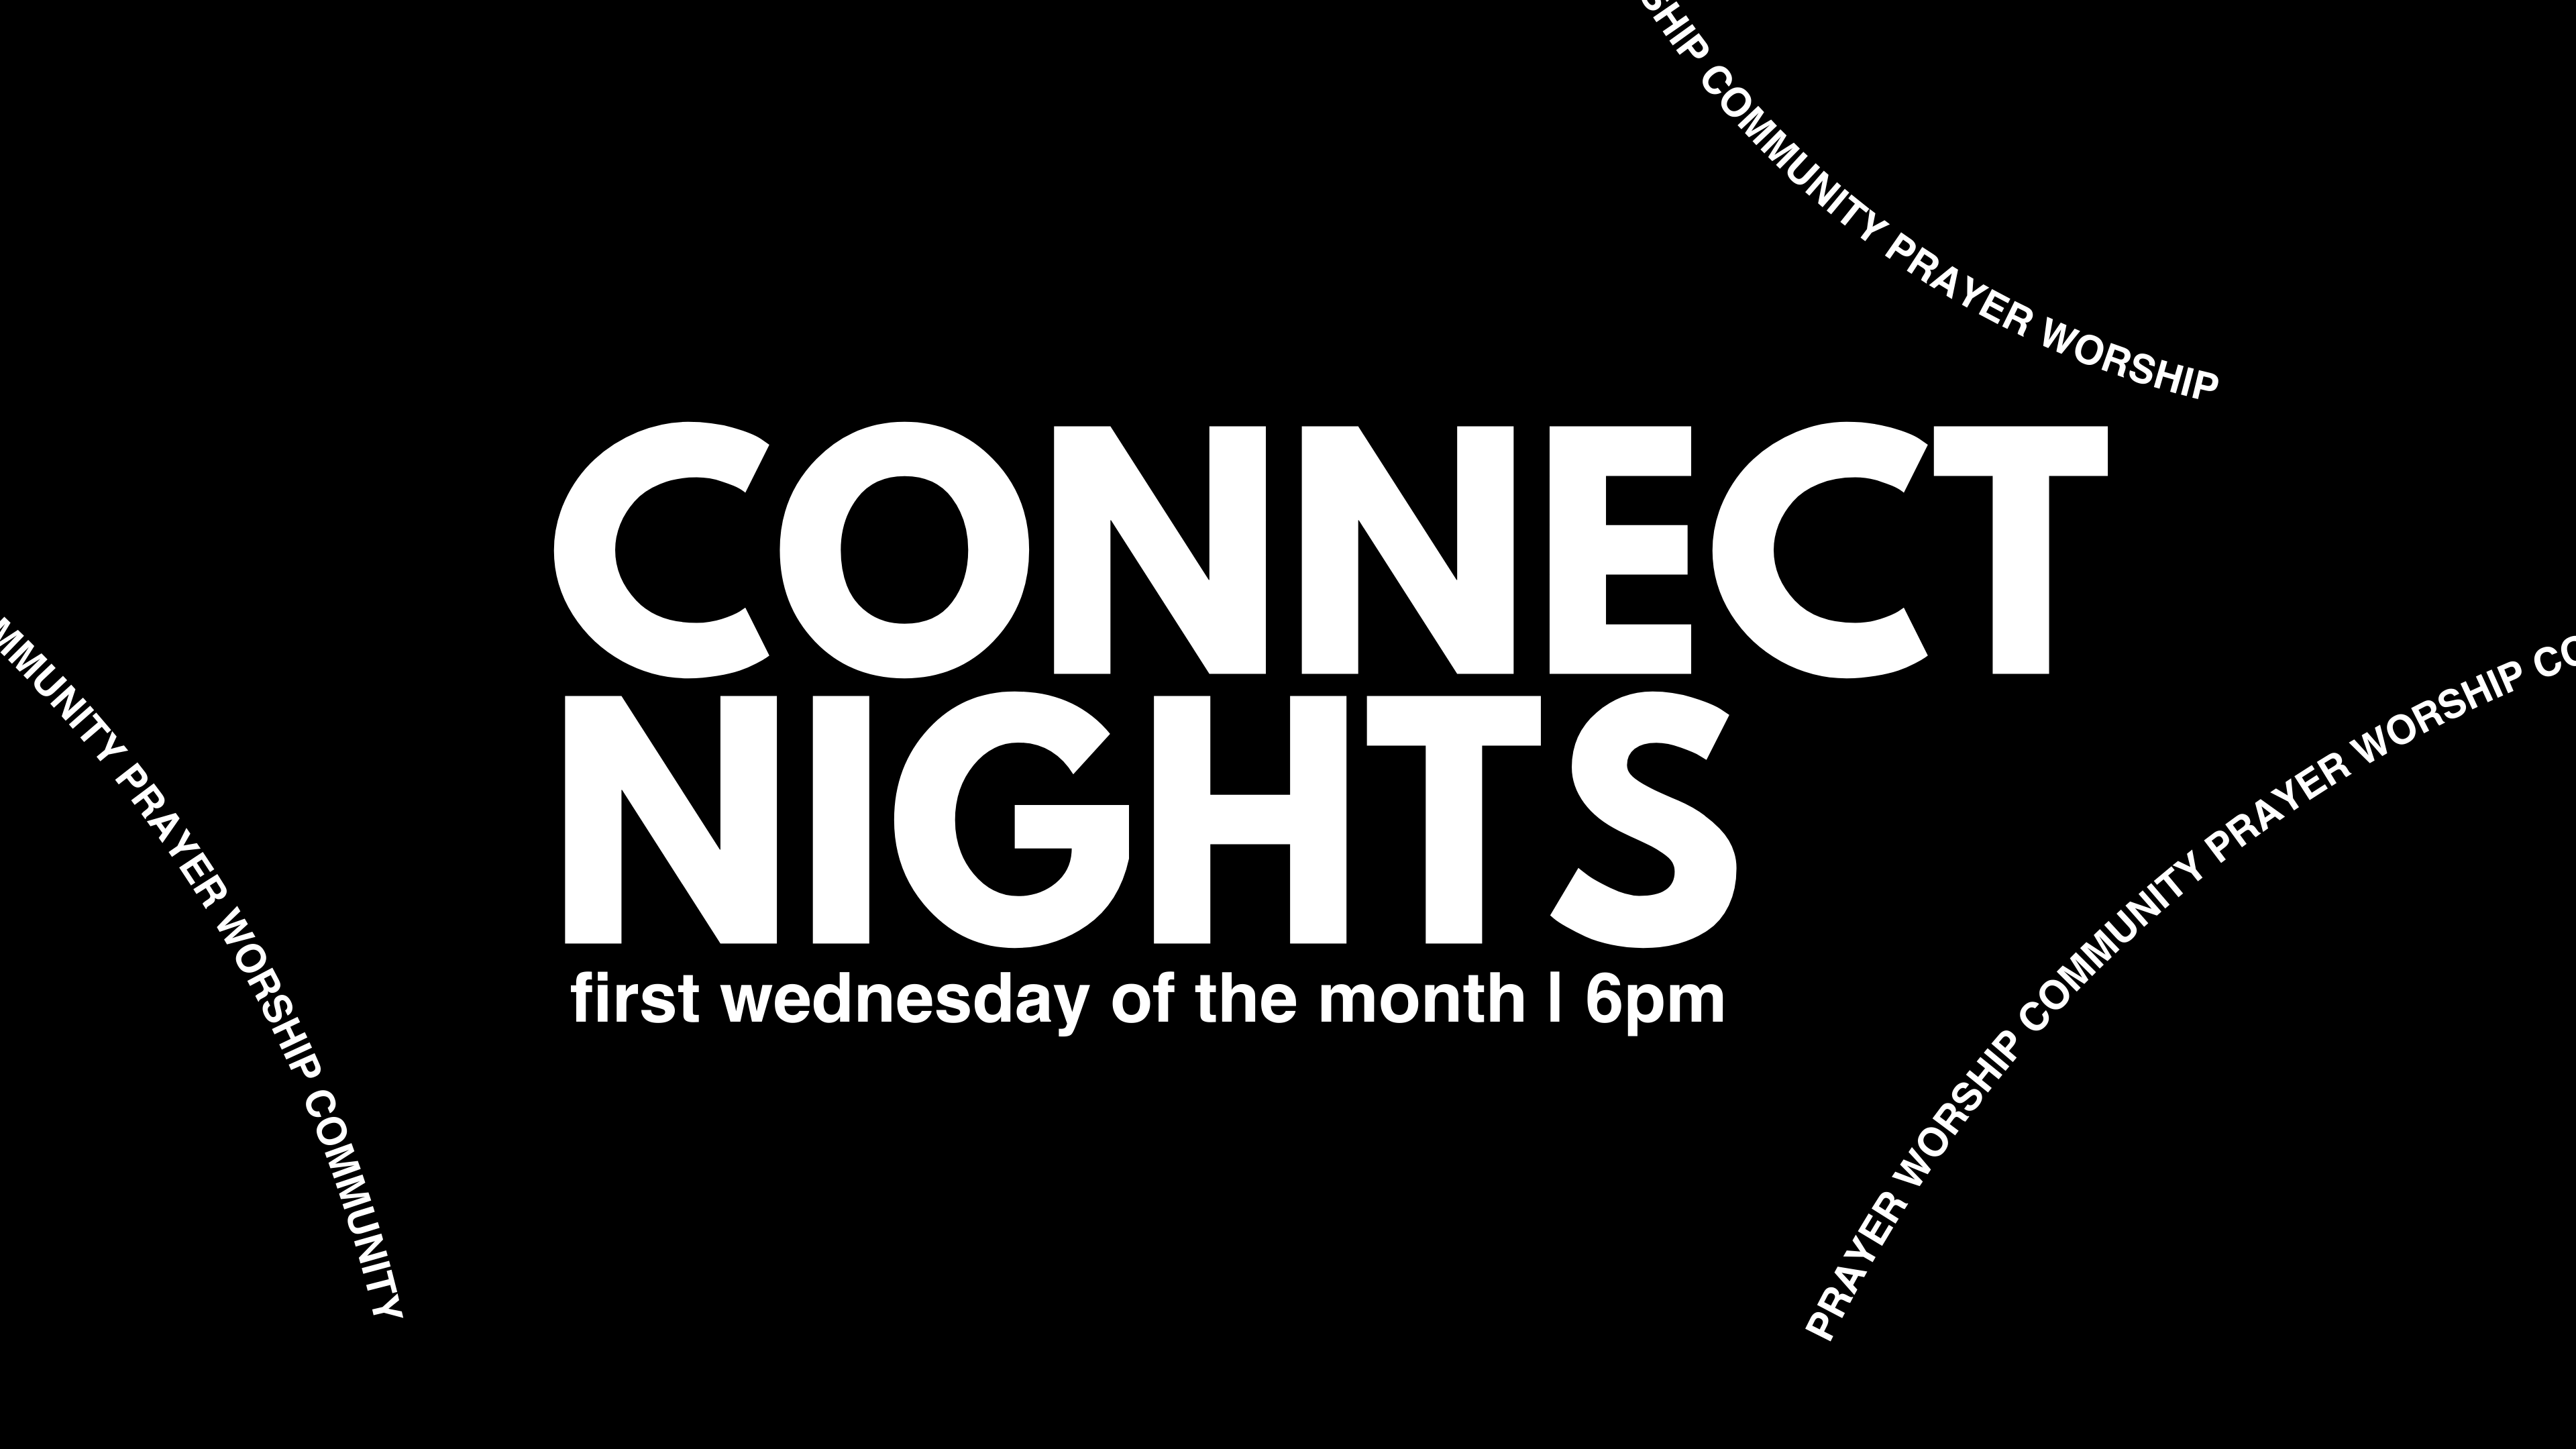 Connect Nights at the Orange County campus